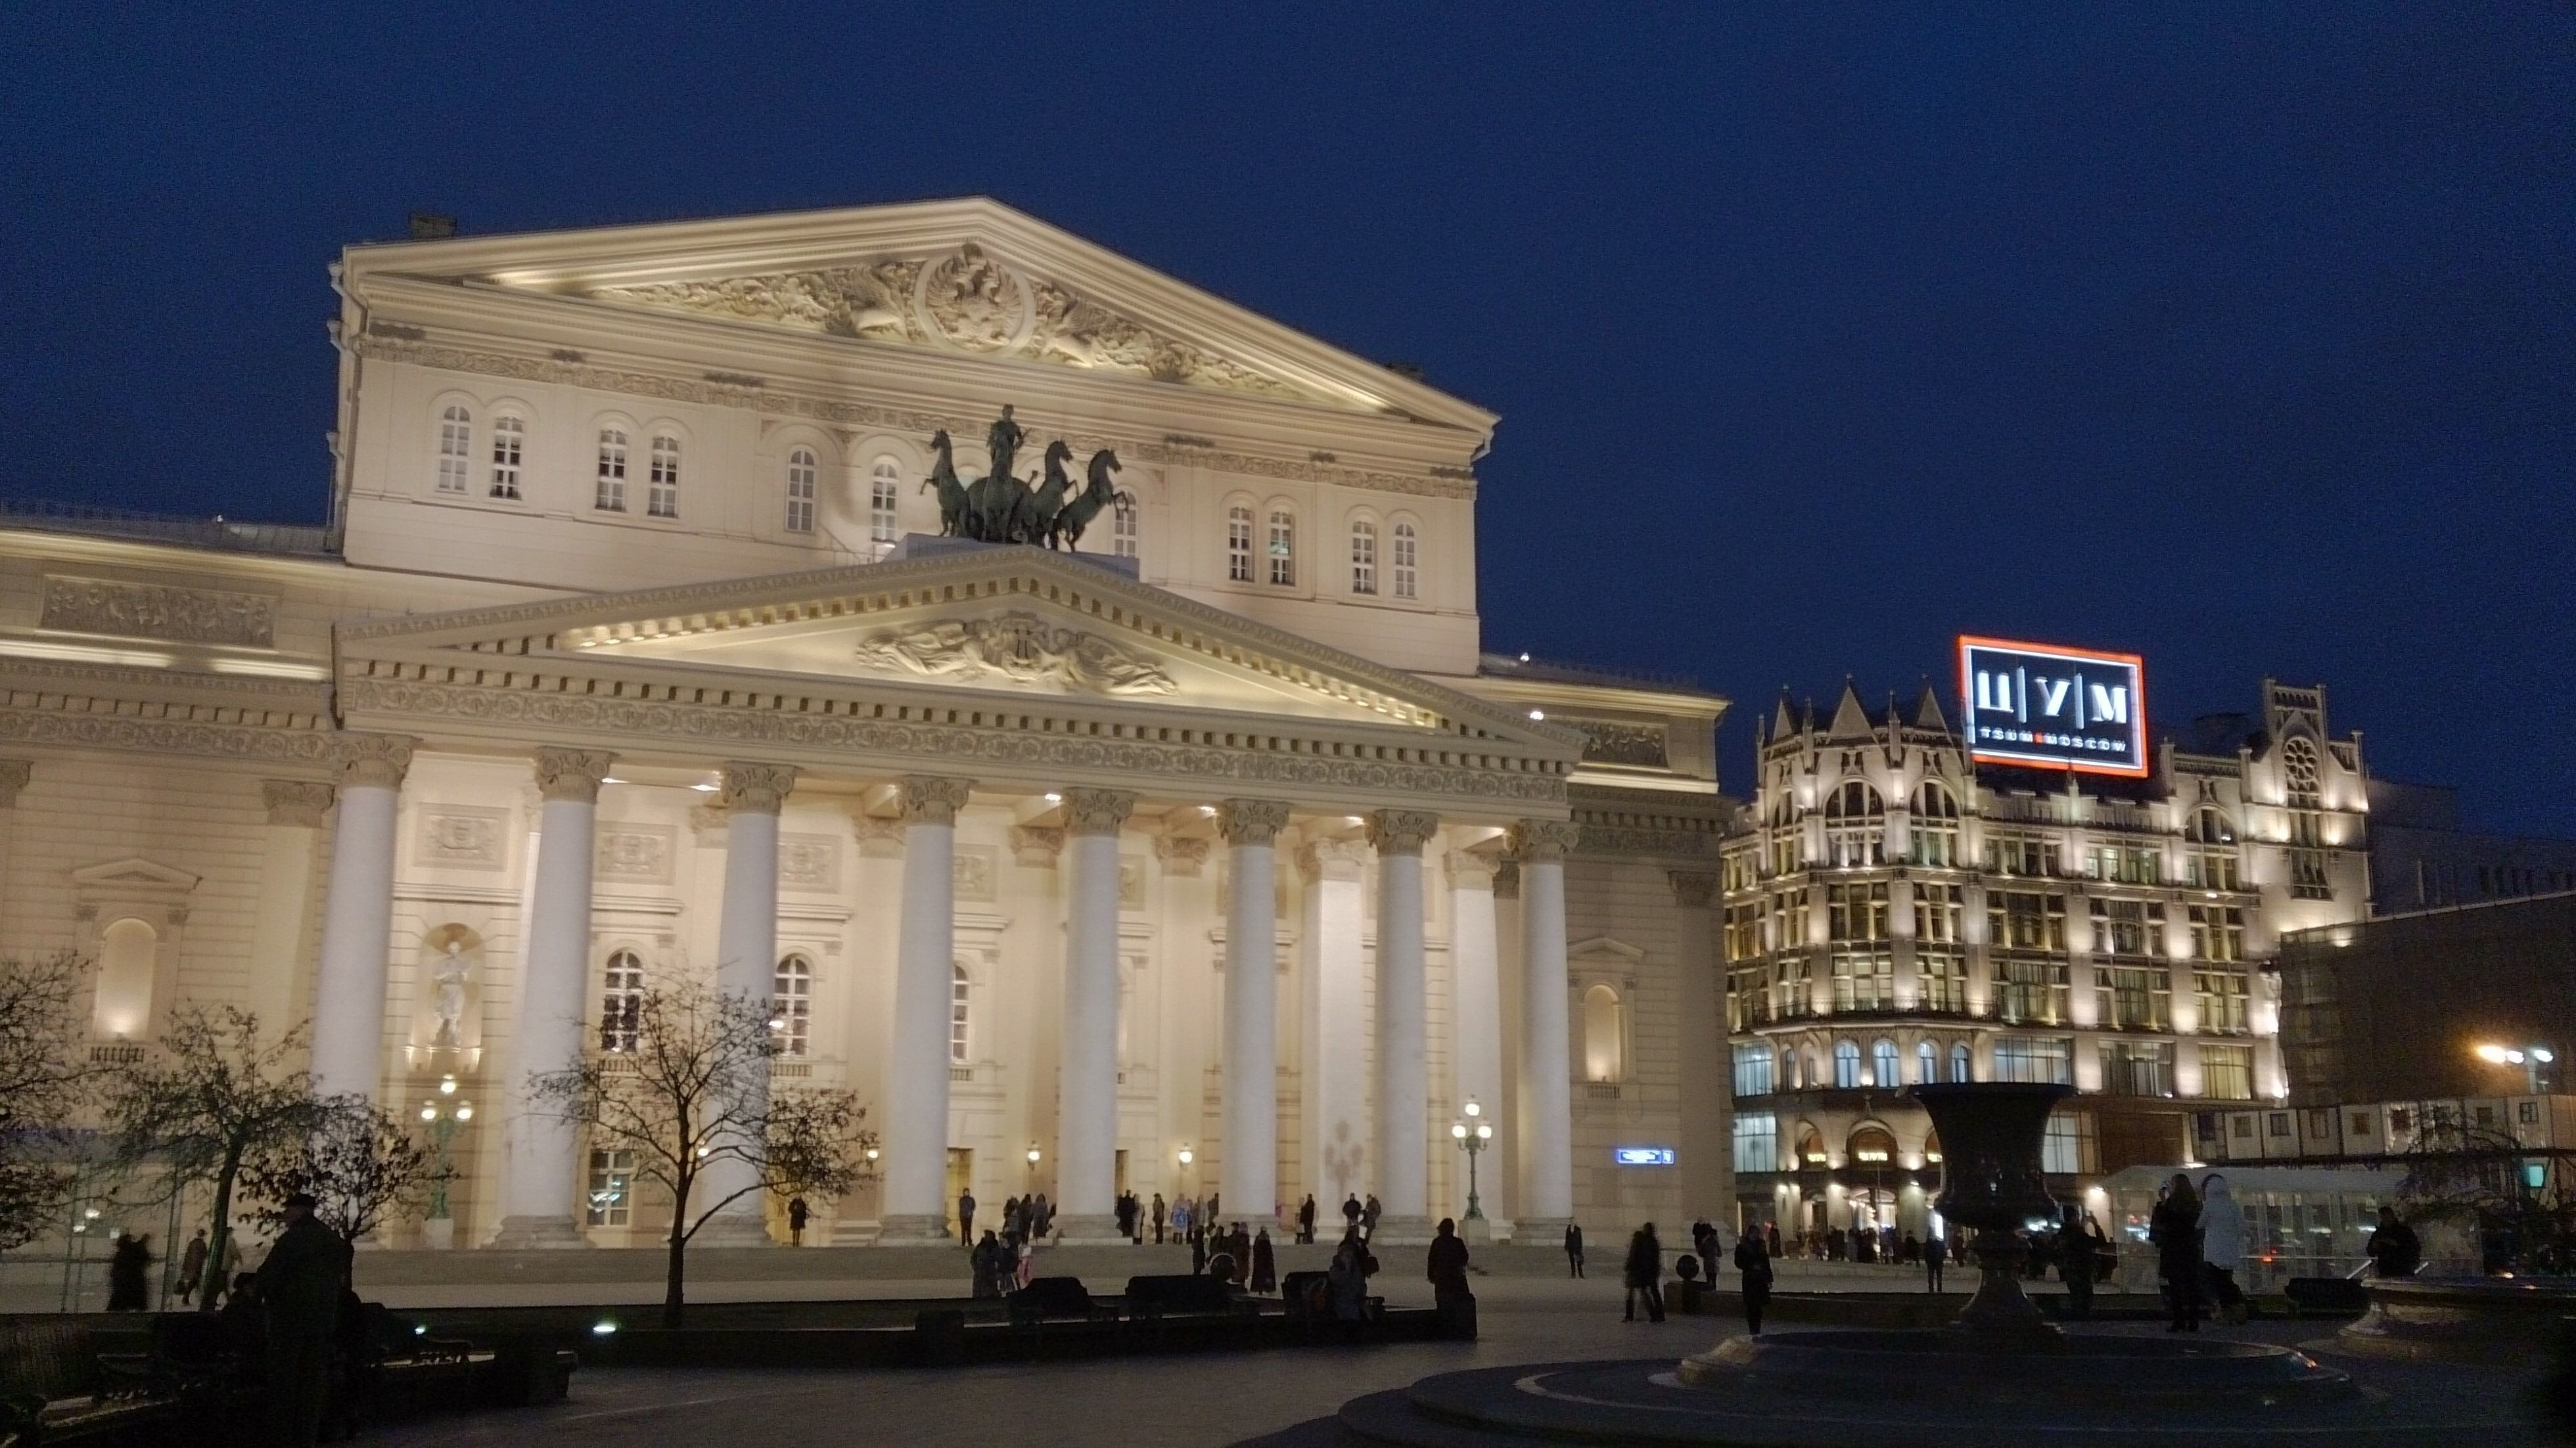 Bolshoi theatre in moscow russia tourist place 4k wallpapers hd wallpapers - 4k wallpaper russia ...